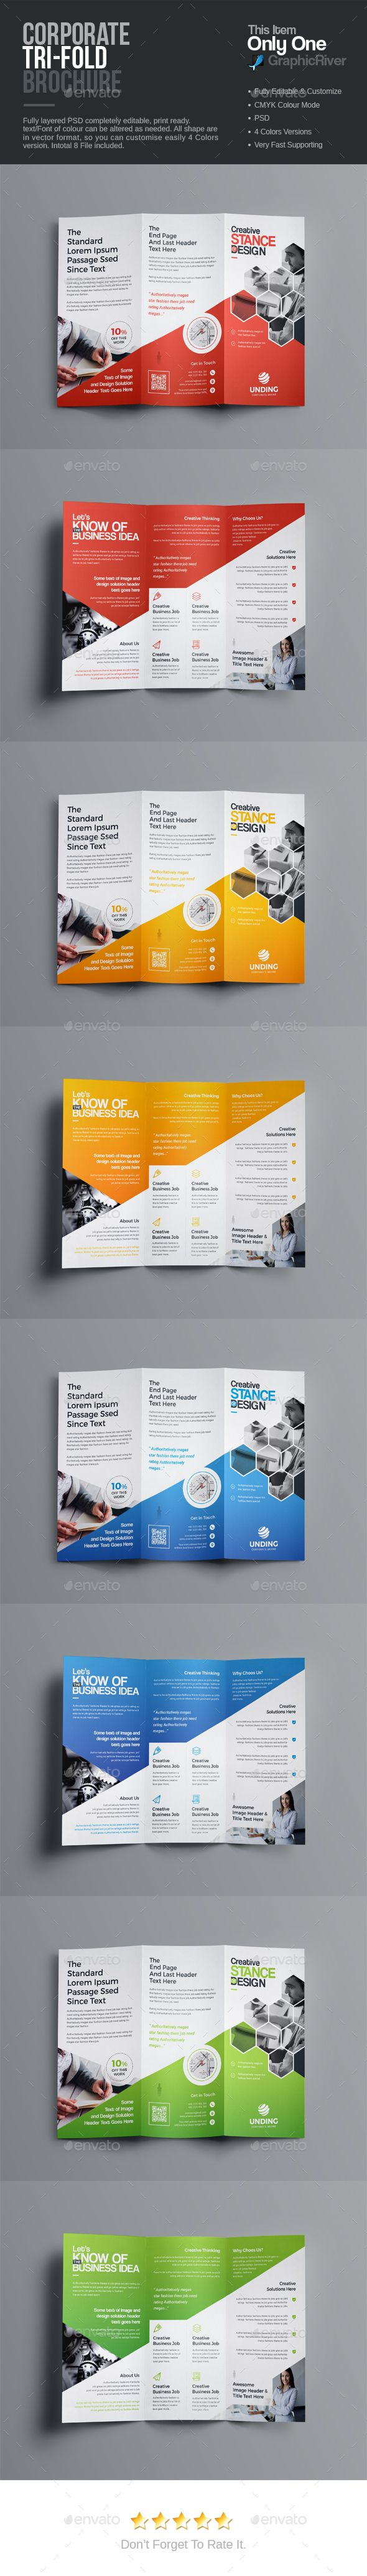 TriFold Brochure — Photoshop PSD #tables #User Interface & UI Elements • Available here → https://graphicriver.net/item/trifold-brochure/19564287?ref=pxcr